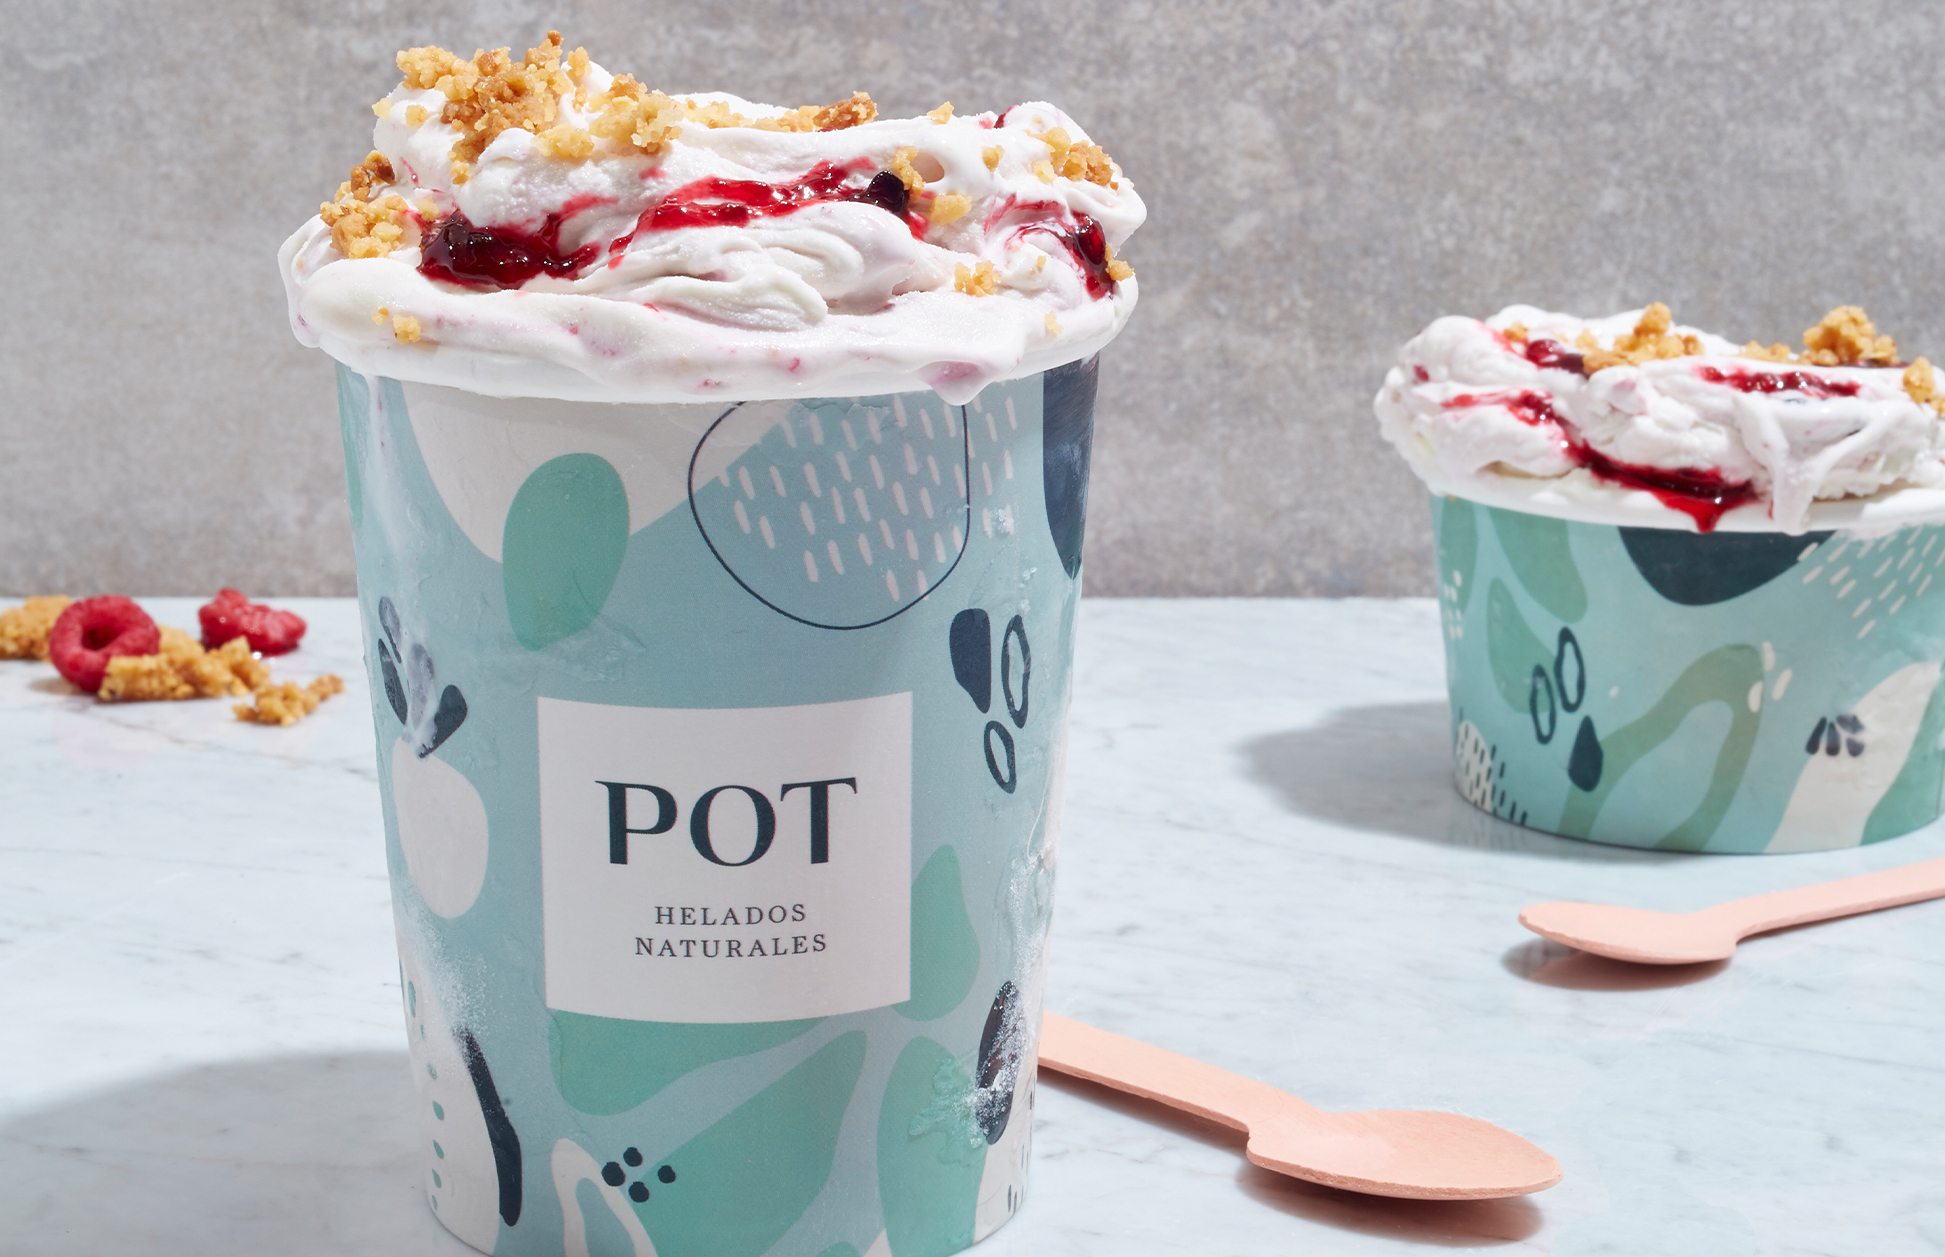 Pot the Sustainable Ice Cream from Argentina